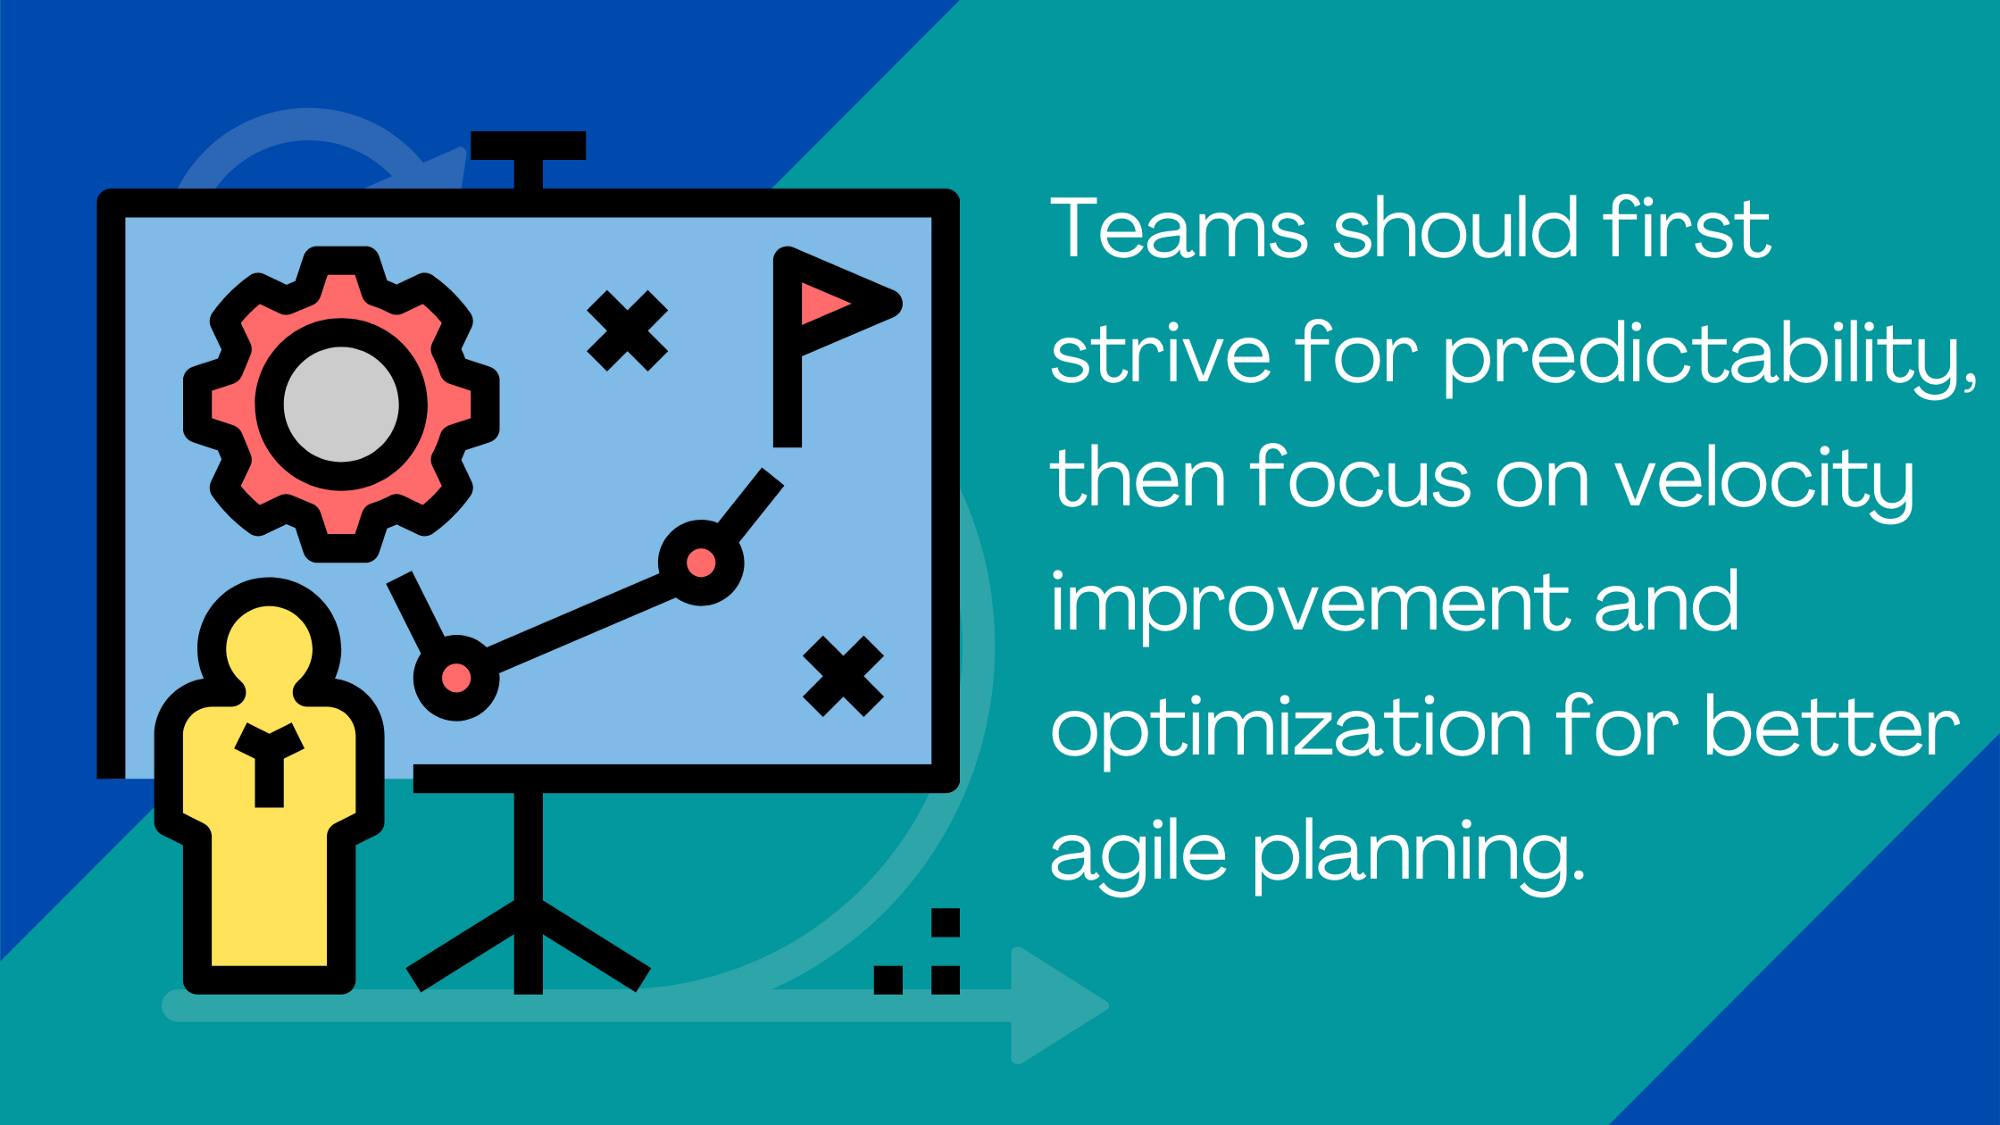 Teams should first strive for predictability, then focus on velocity improvement and optimization for better agile planning.